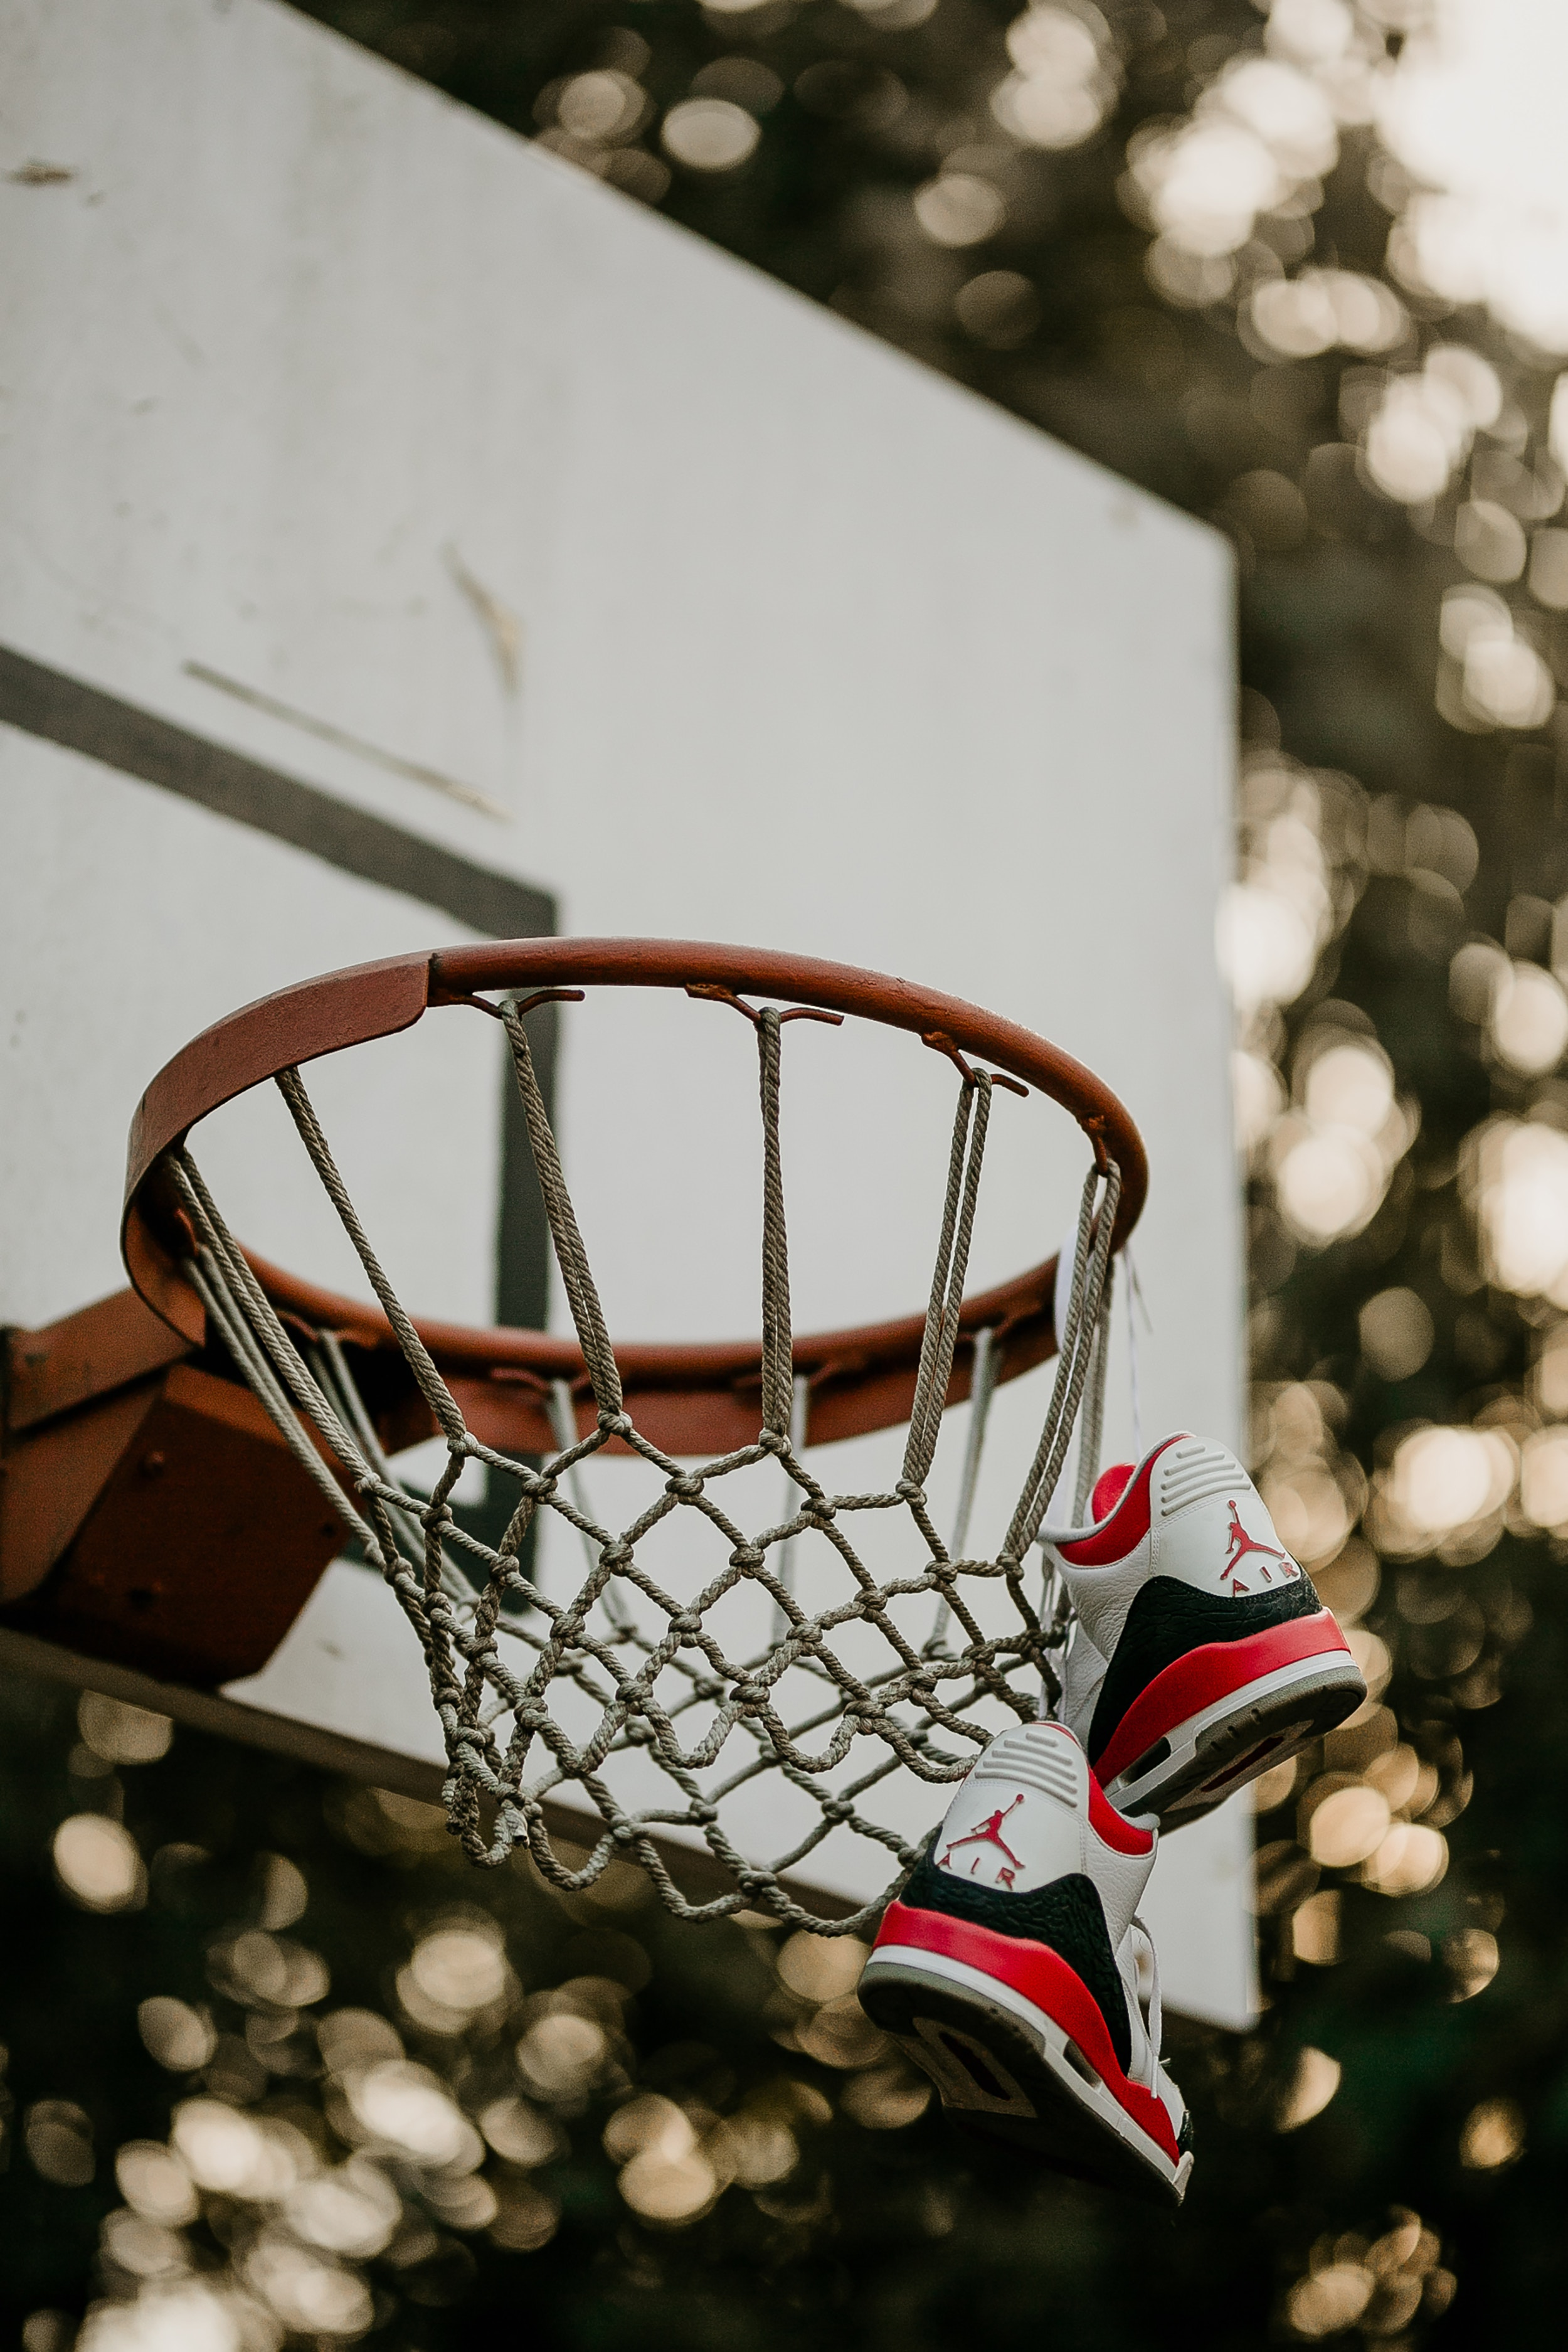 111339 Screensavers and Wallpapers Basketball for phone. Download Sports, Basketball Hoop, Basketball Ring, Sneakers, Grid, Shield, Scute, Basketball pictures for free